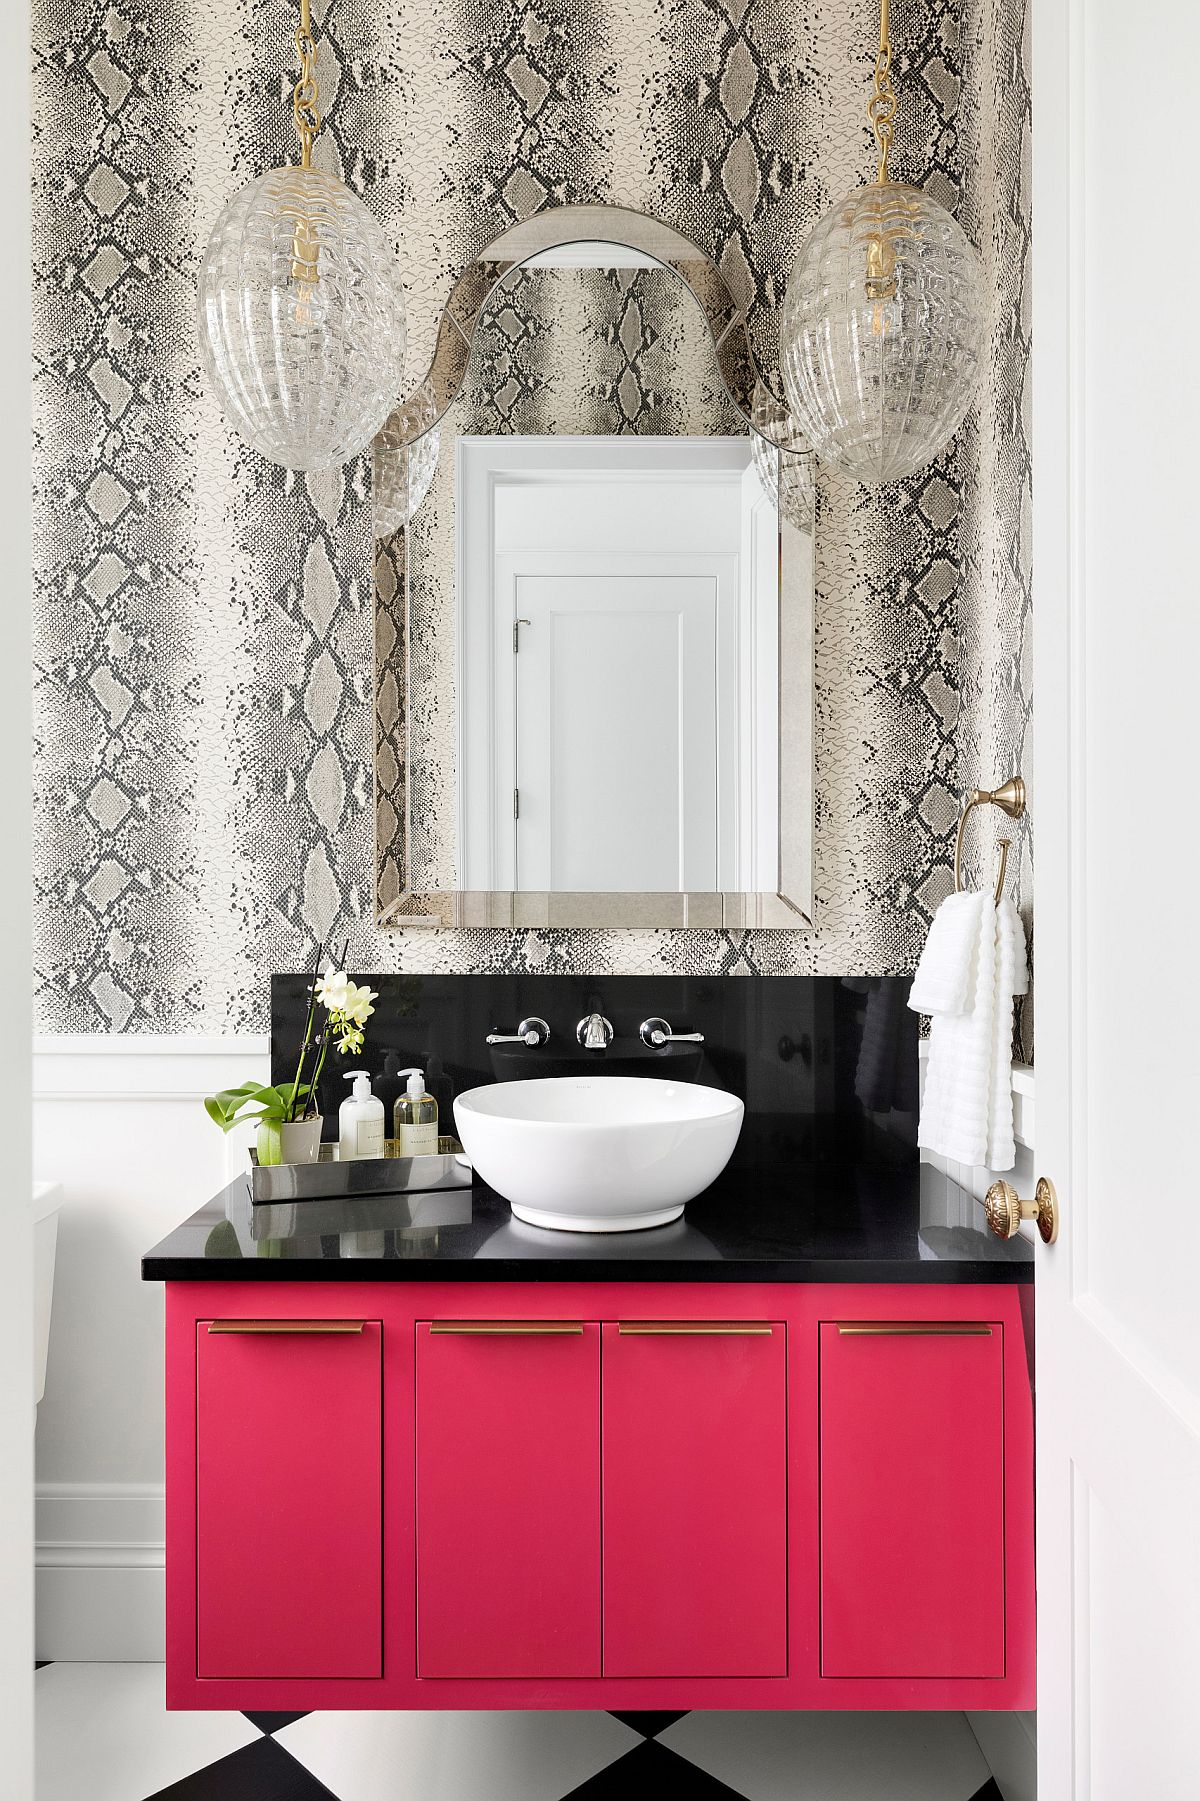 Black and pink vanity steals the show in this bathroom